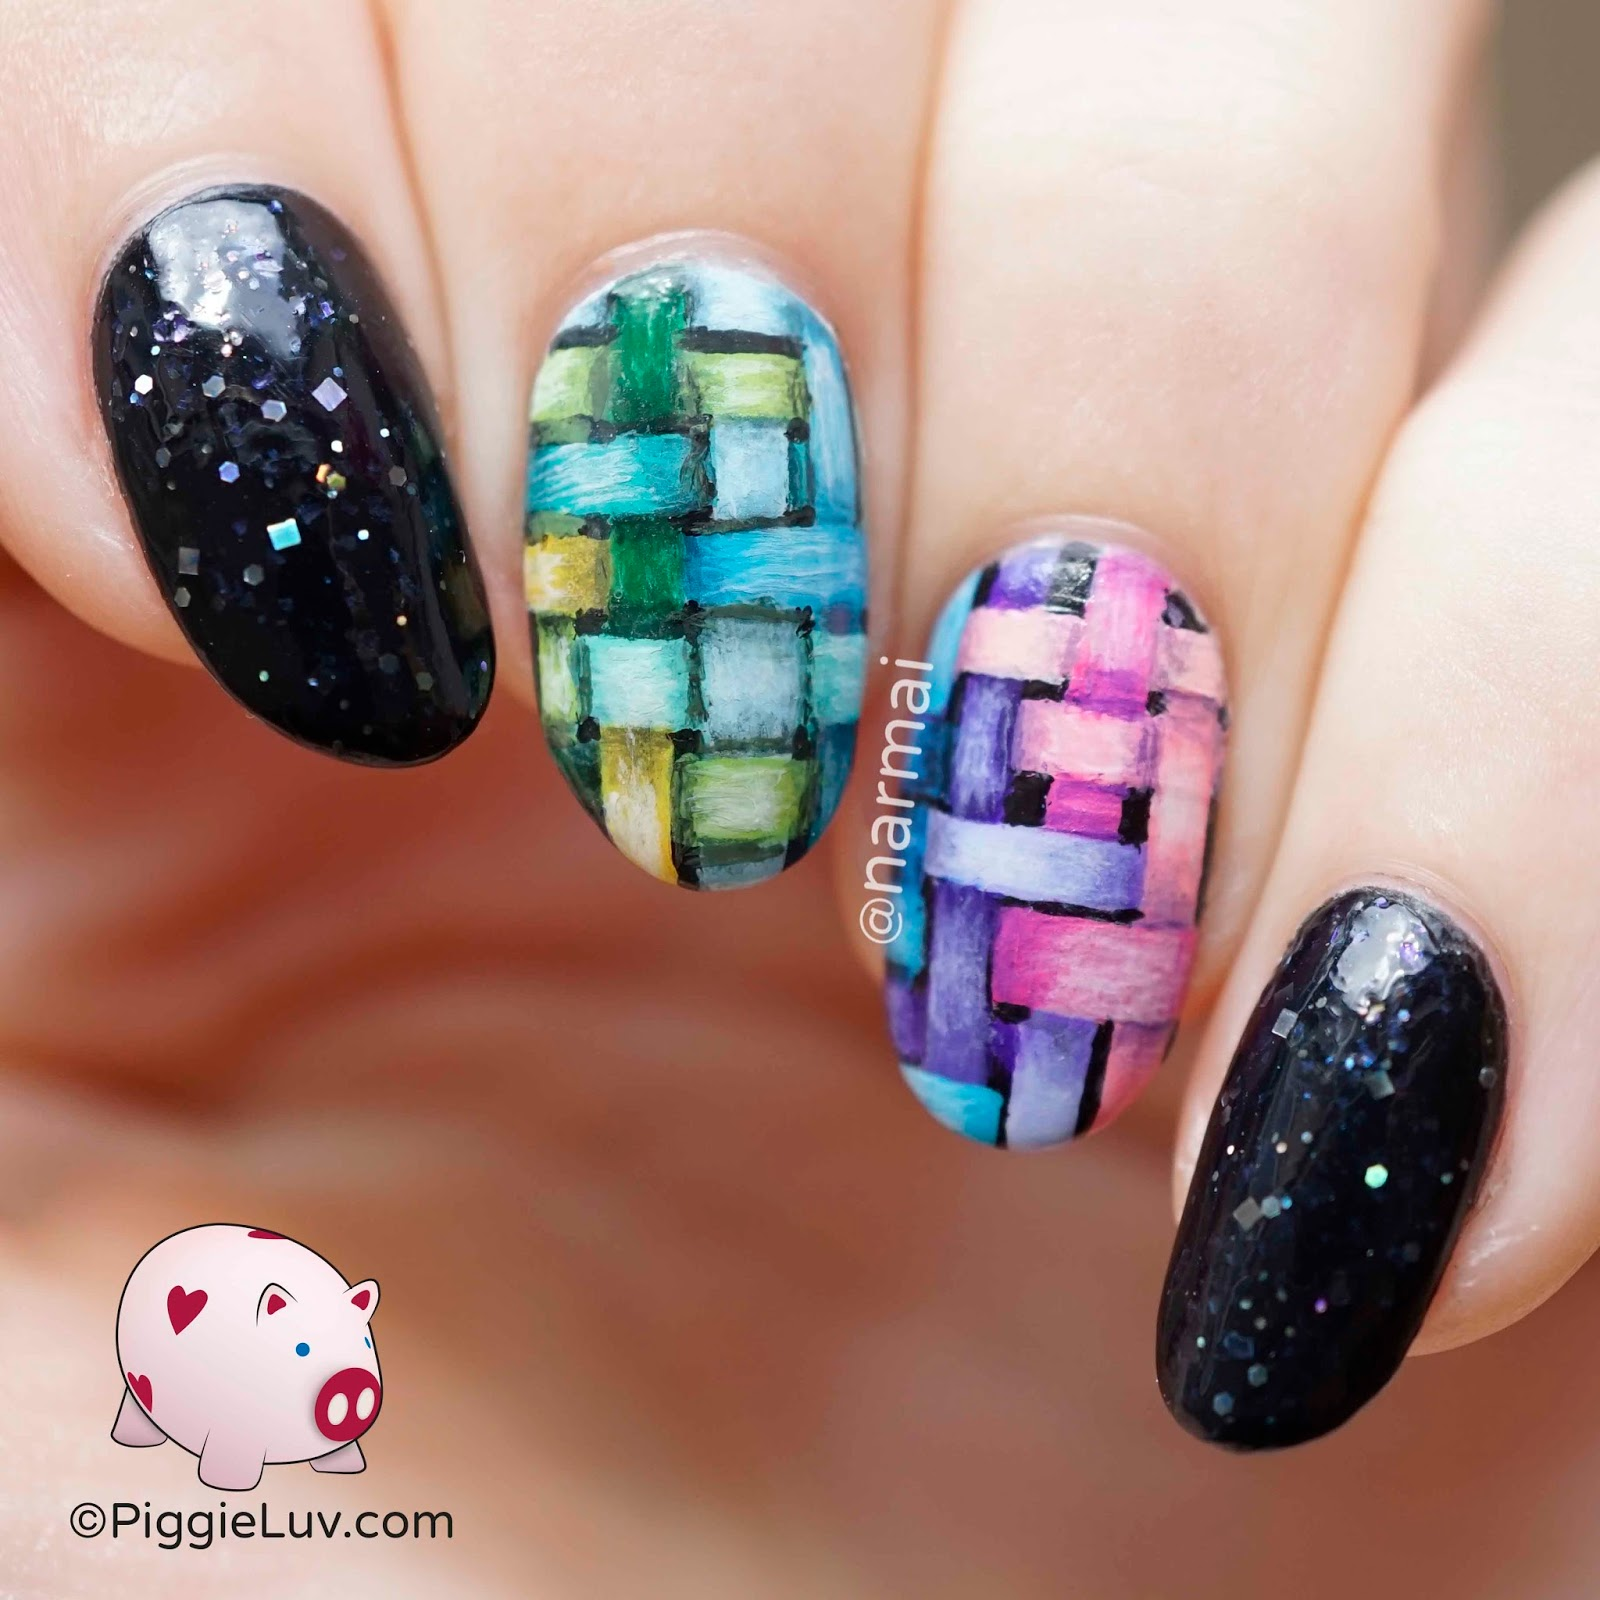 PiggieLuv: Freehand woven rainbow pattern nail art